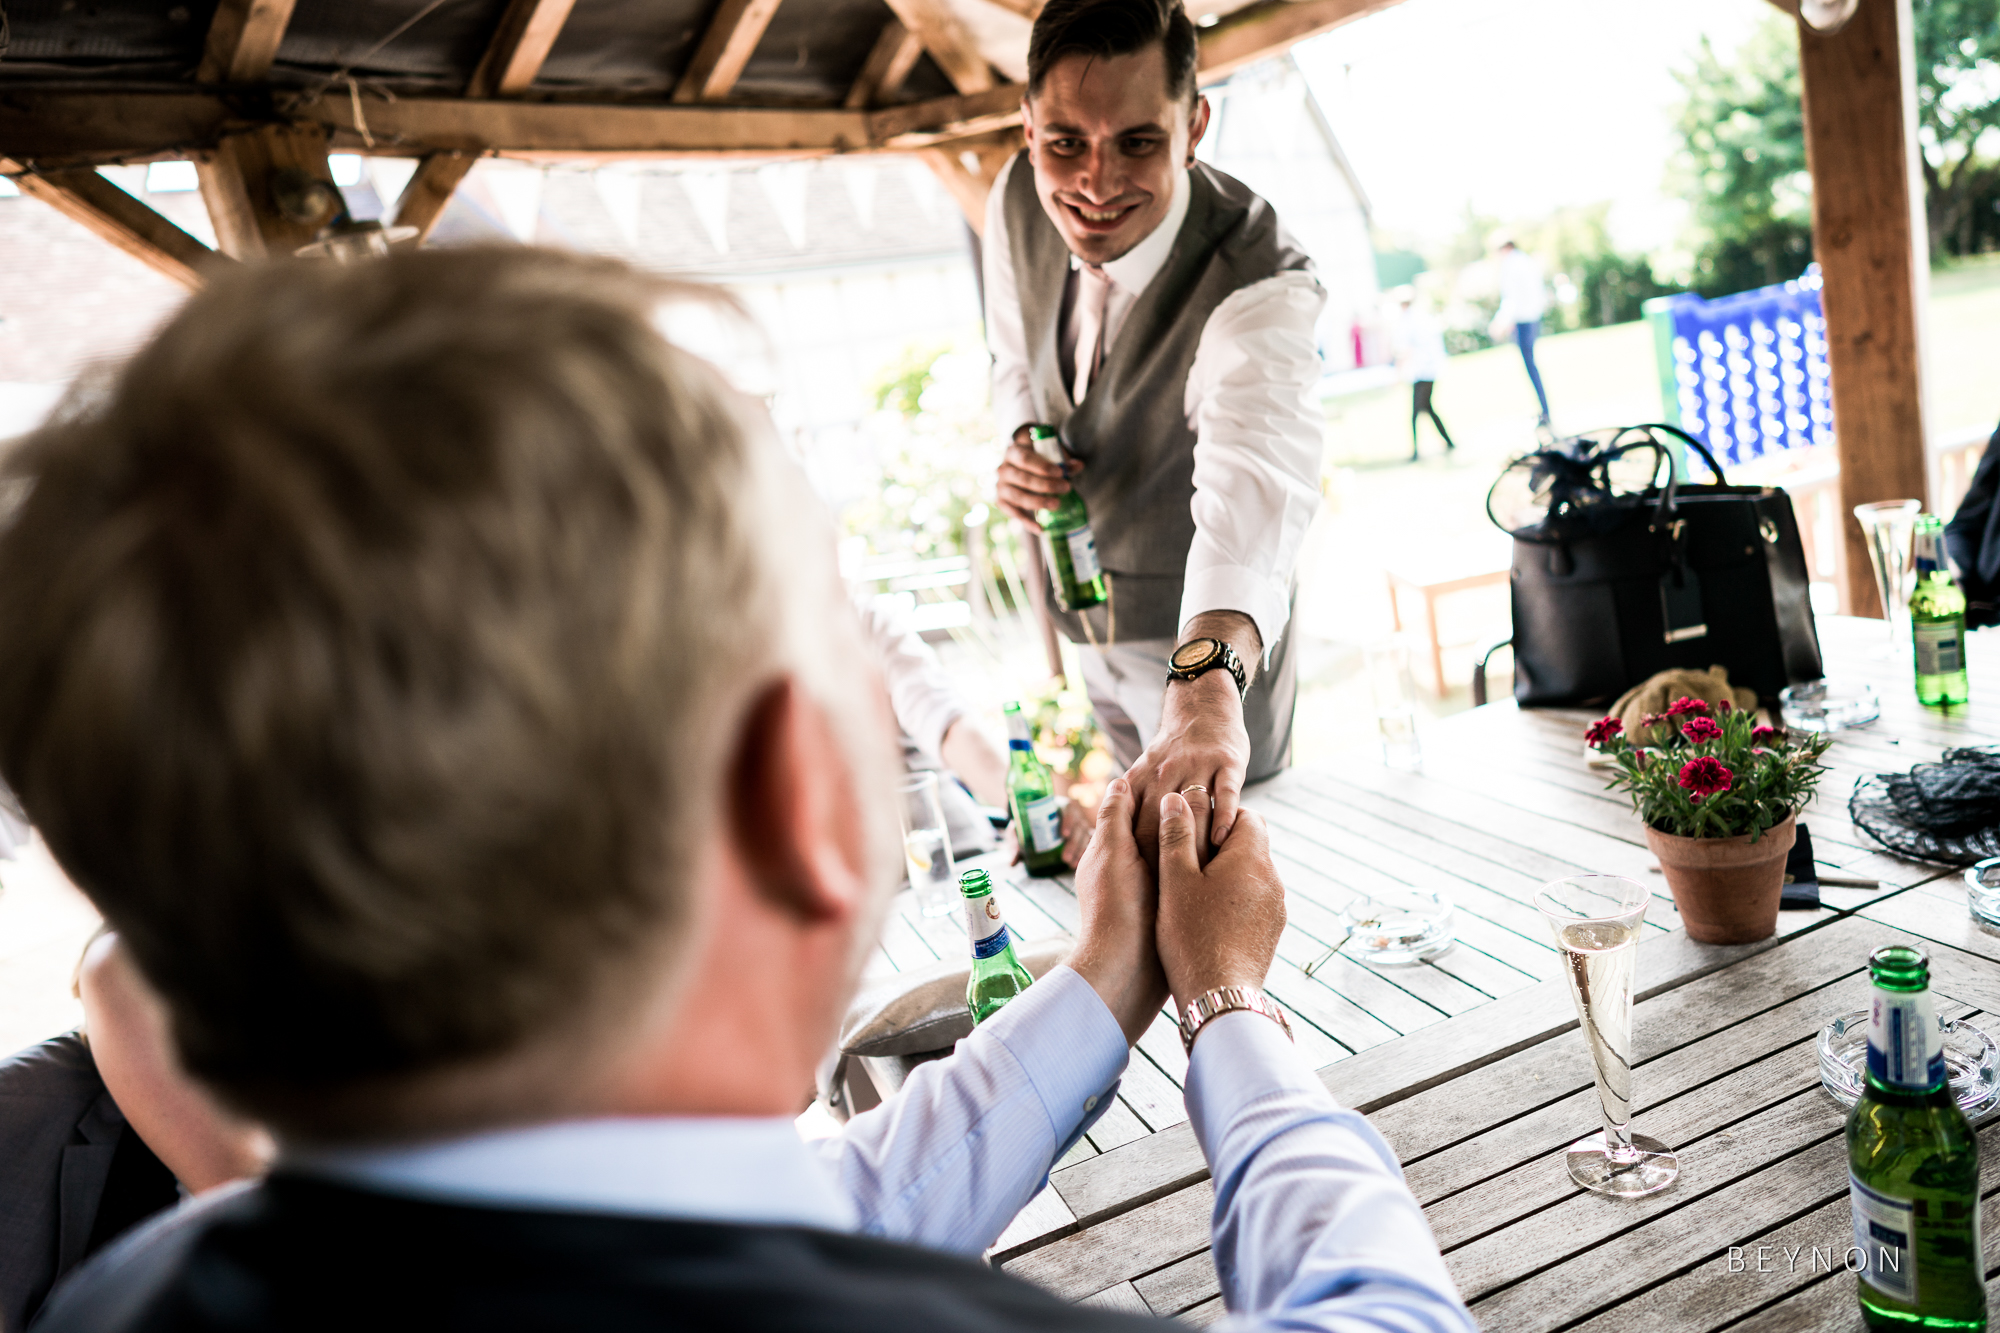 Guest looks at Groom's wedding ring